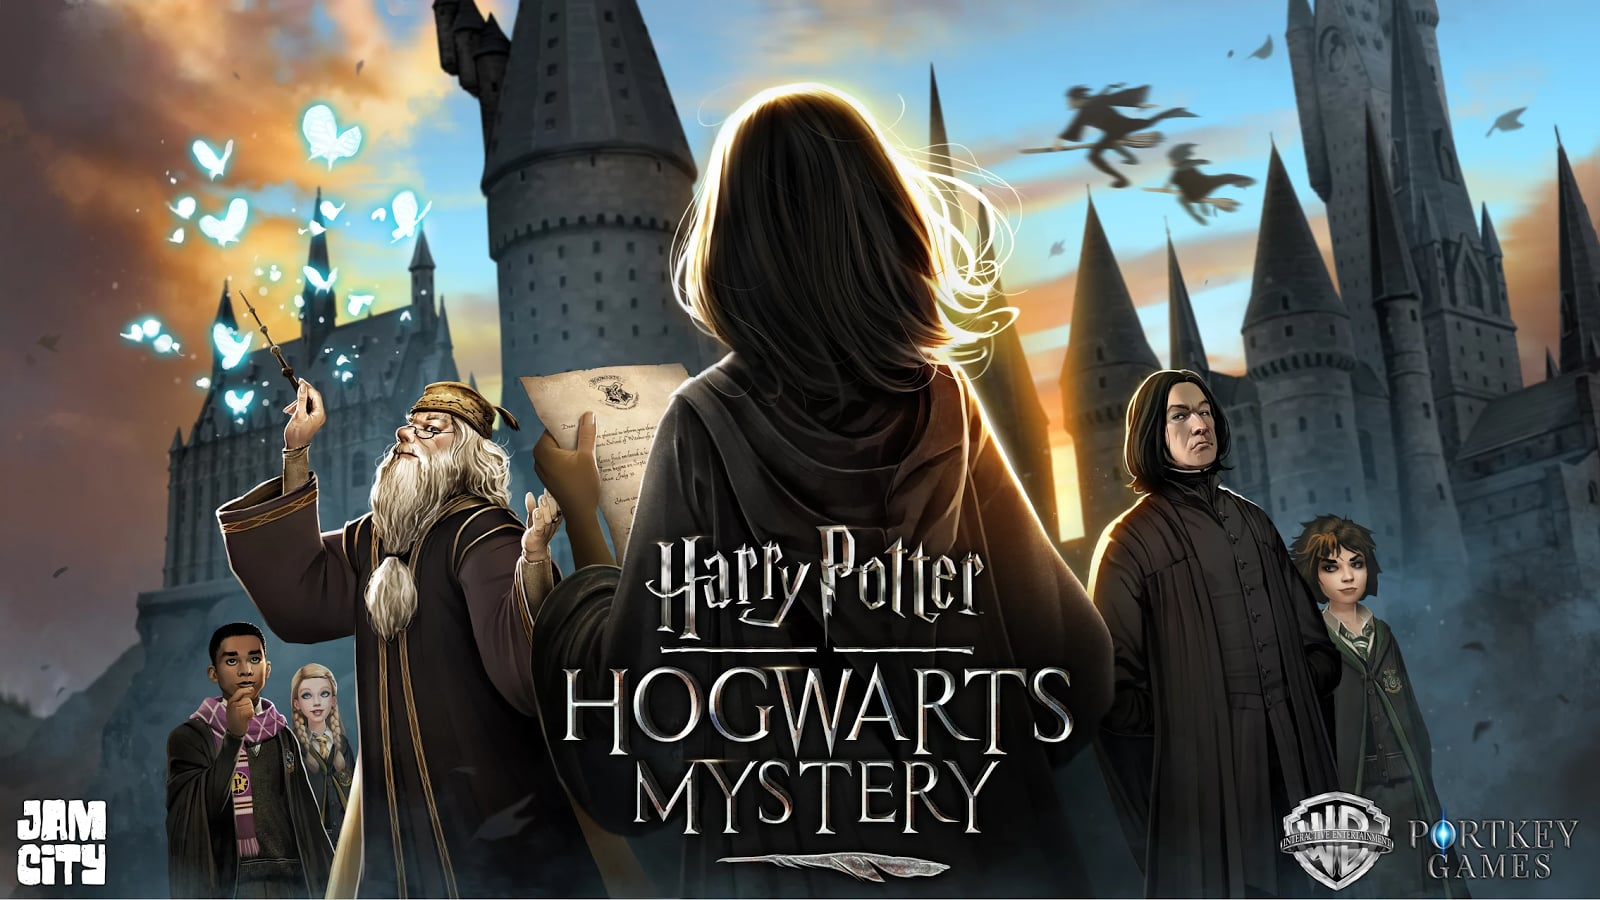 First Look At Harry Potter: Hogwarts Mystery Mobile Game